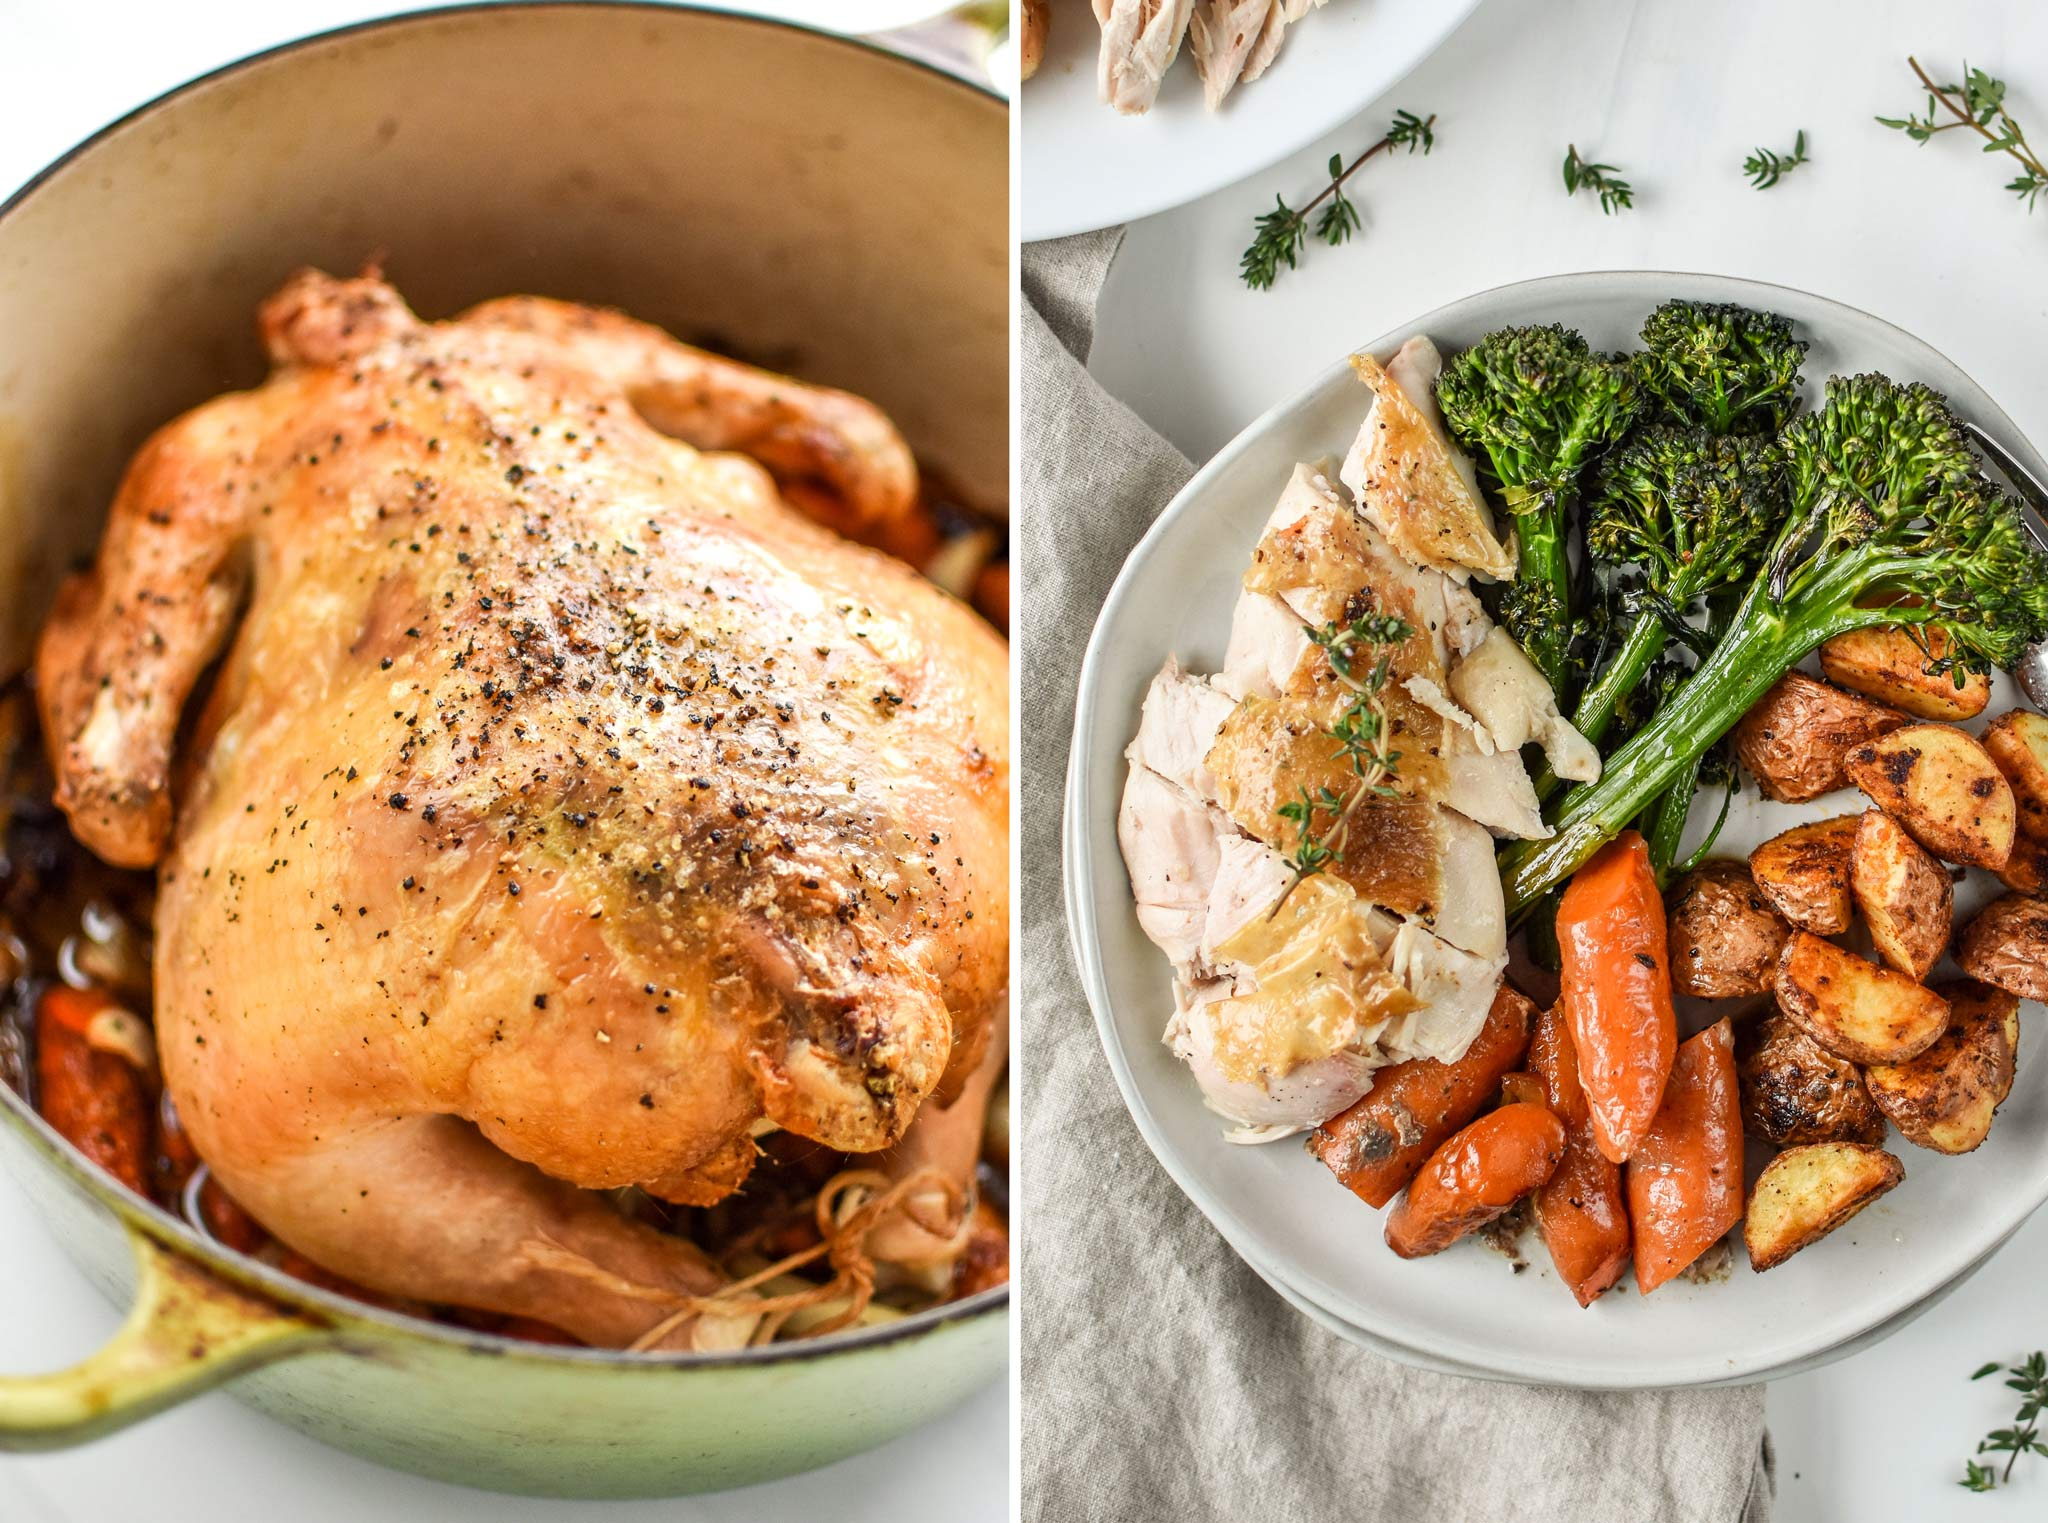 simple whole roast chicken with veggies is a great whole30 dinner recipe that makes excellent leftovers